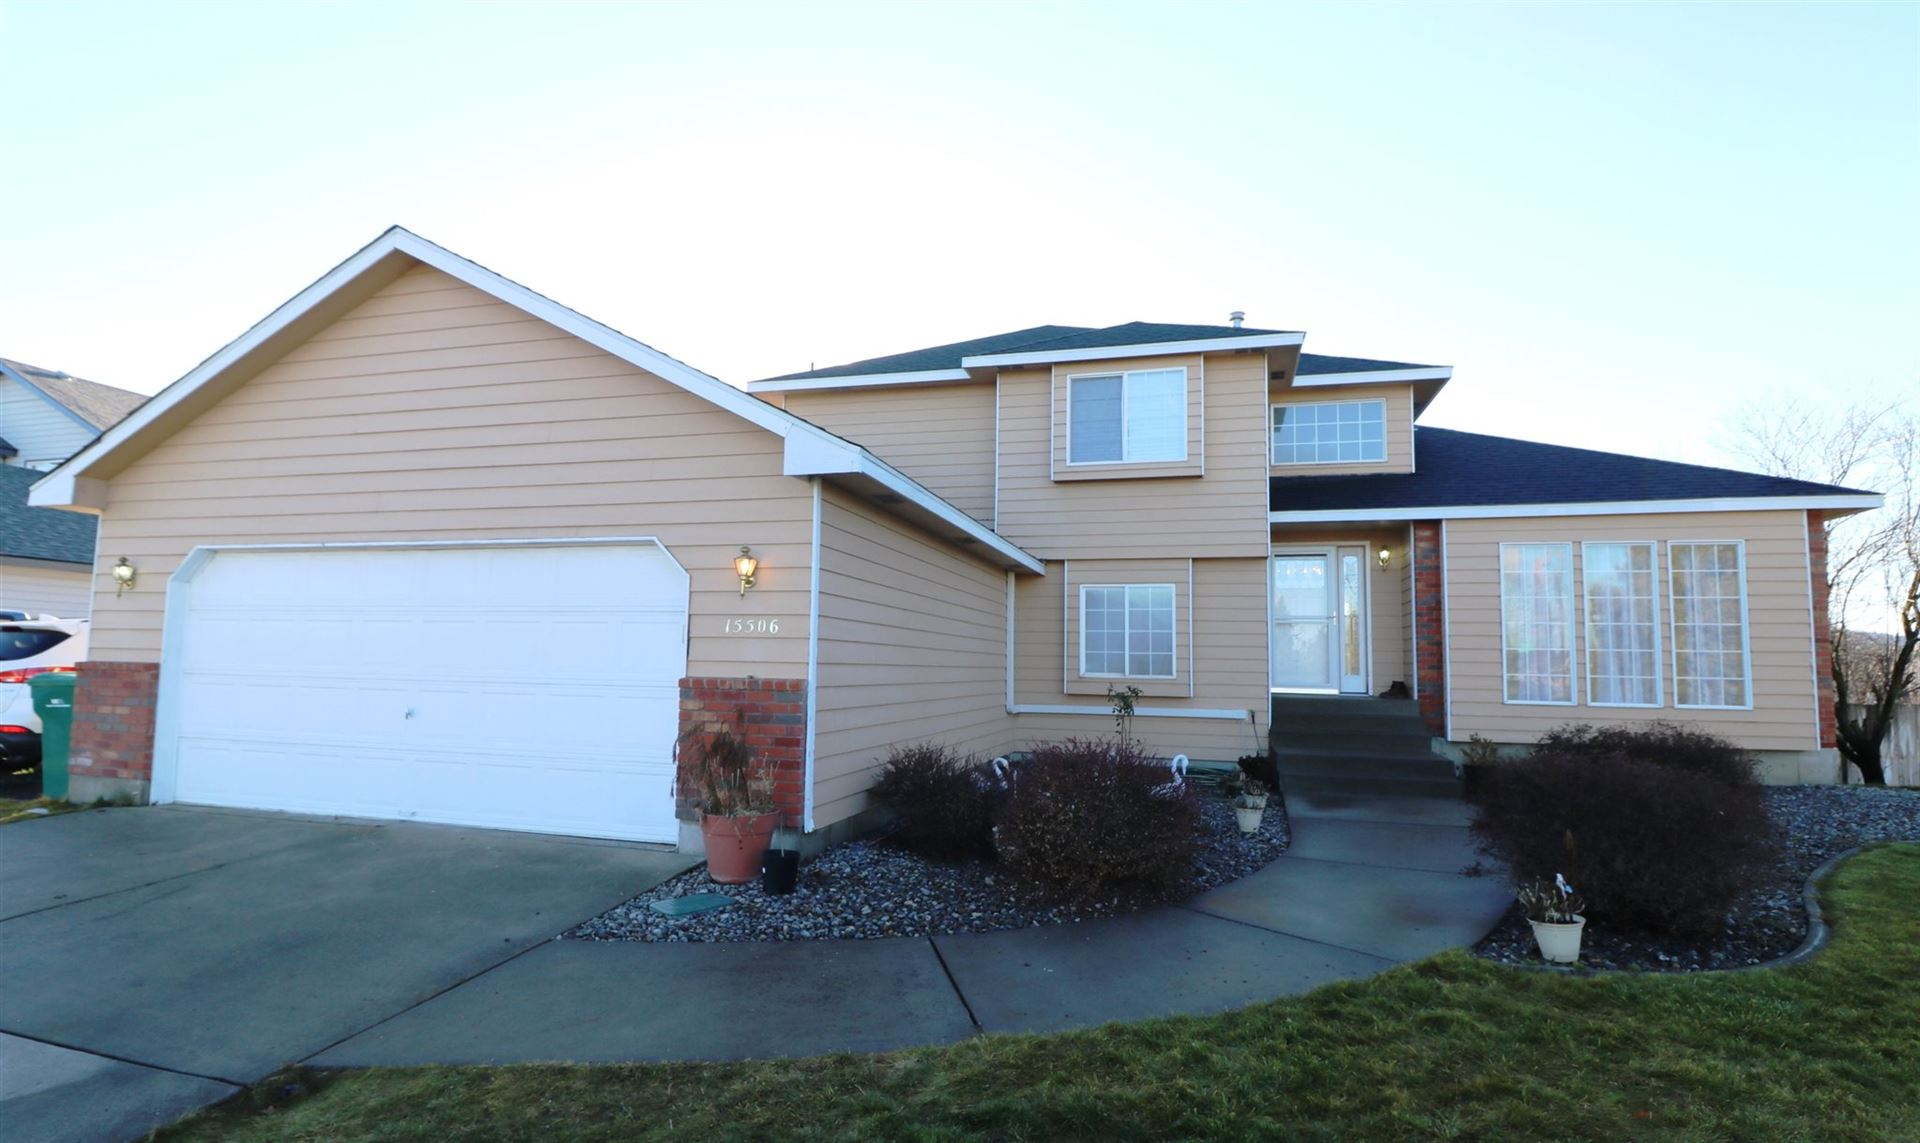 15506 E 20th Ave, Spokane Valley, WA 99037 - #: 202110107